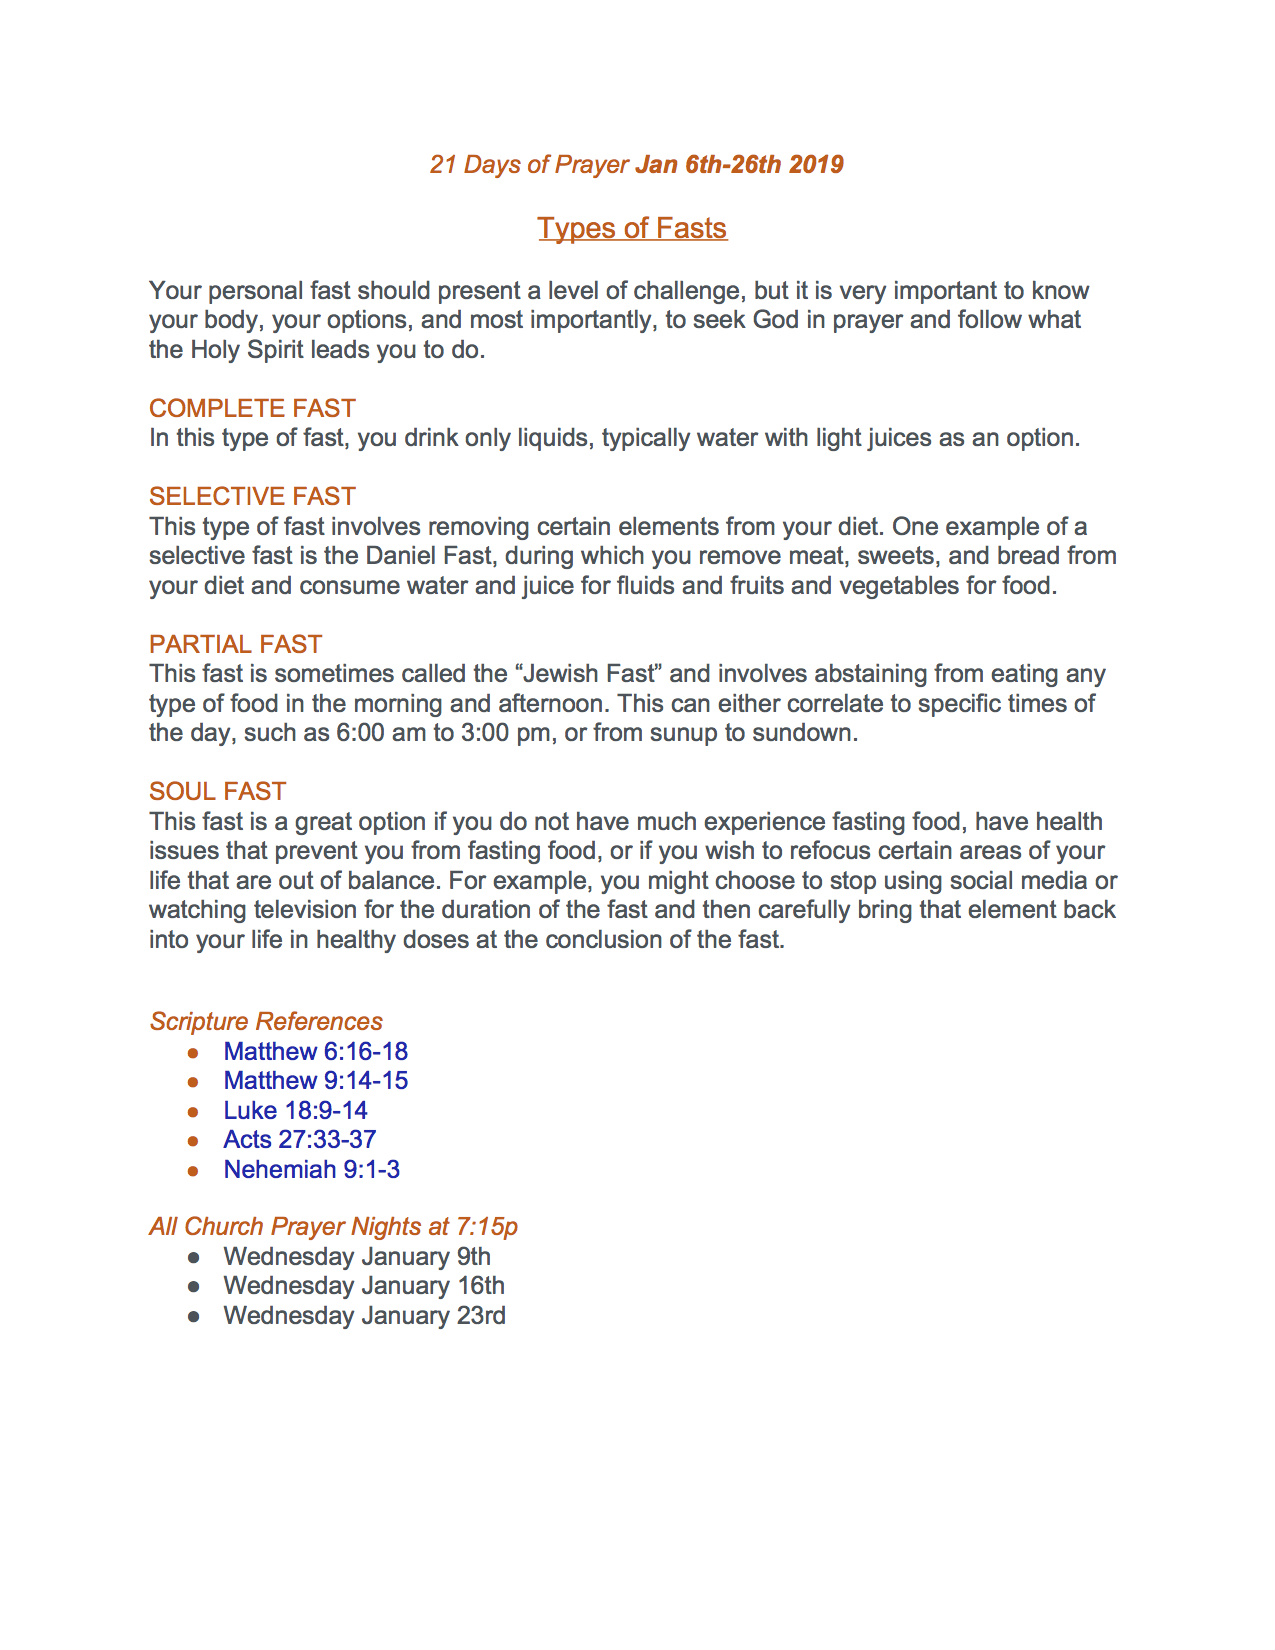 21 Days of Prayer Jan 6th-26th 2019_ Types of Fasts.jpg